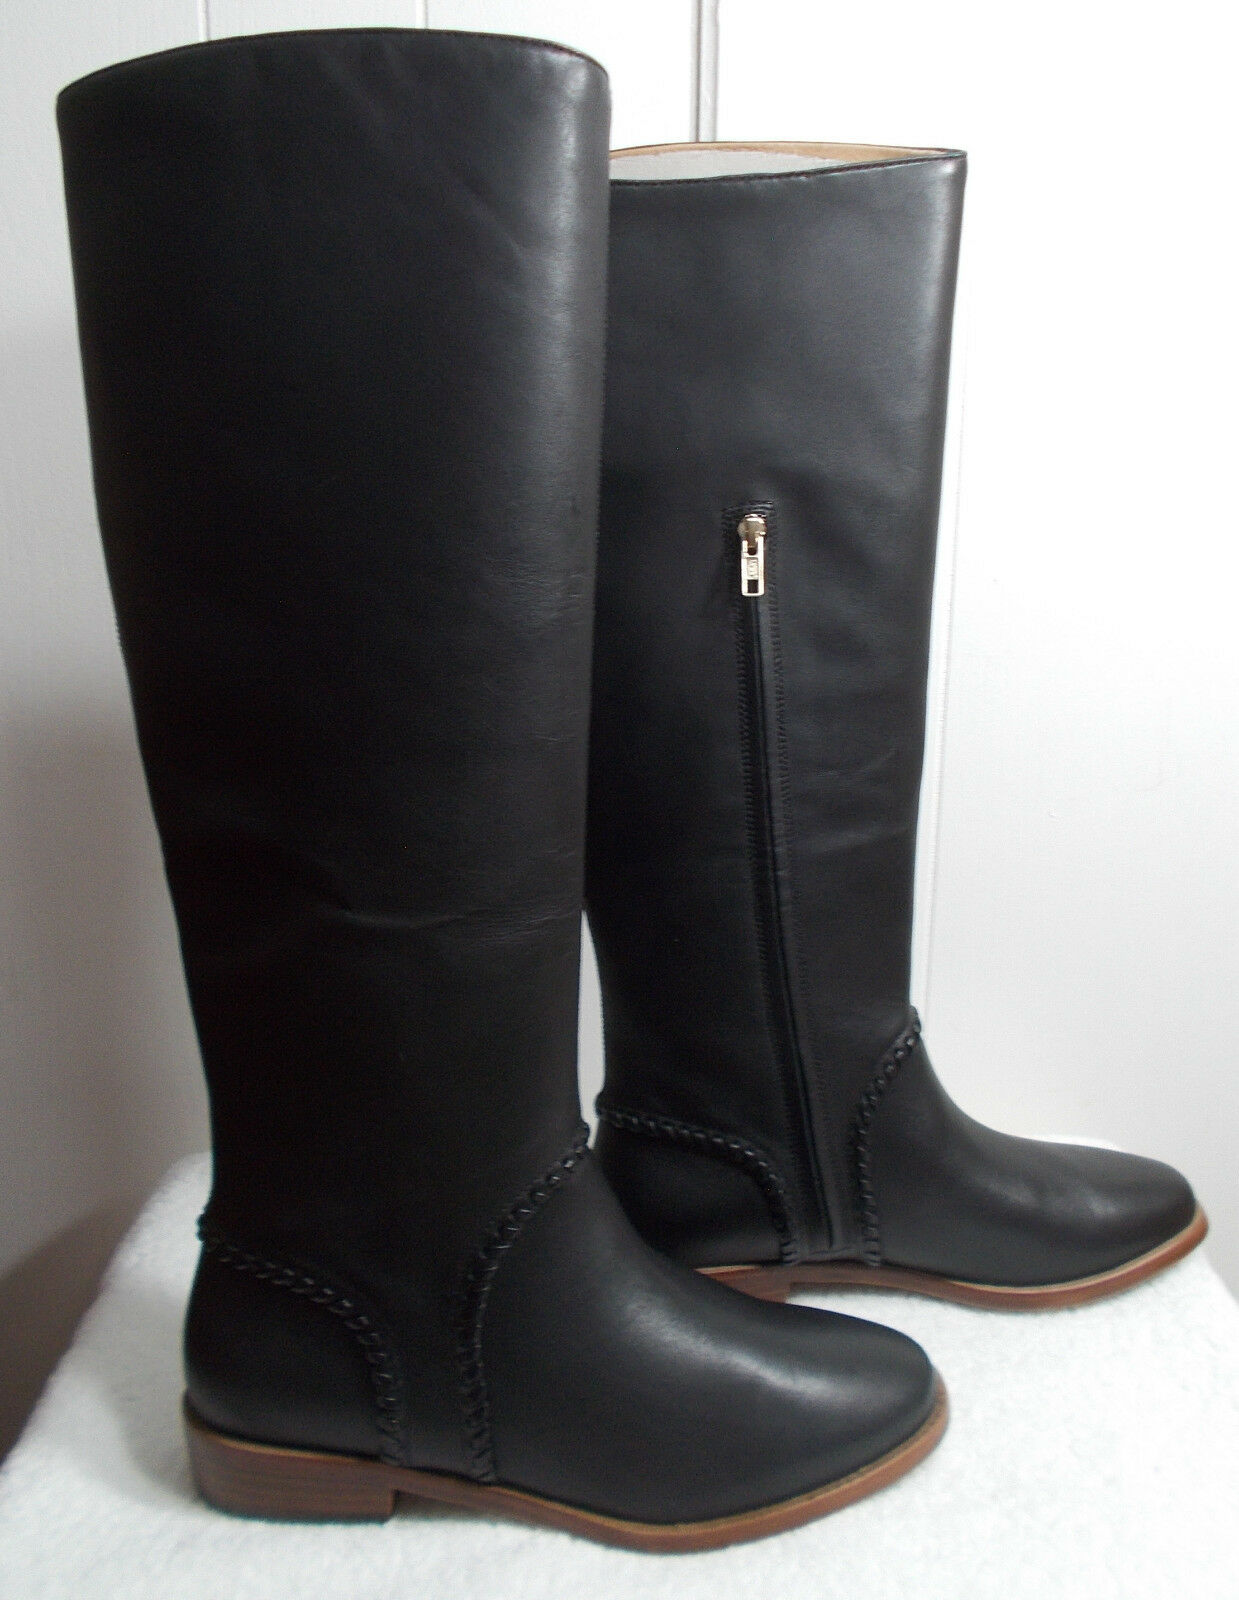 27e17c6f3c7 Womens UGG Gracen Black Leather Whipstitch BOOTS Size 9 Style 1019086